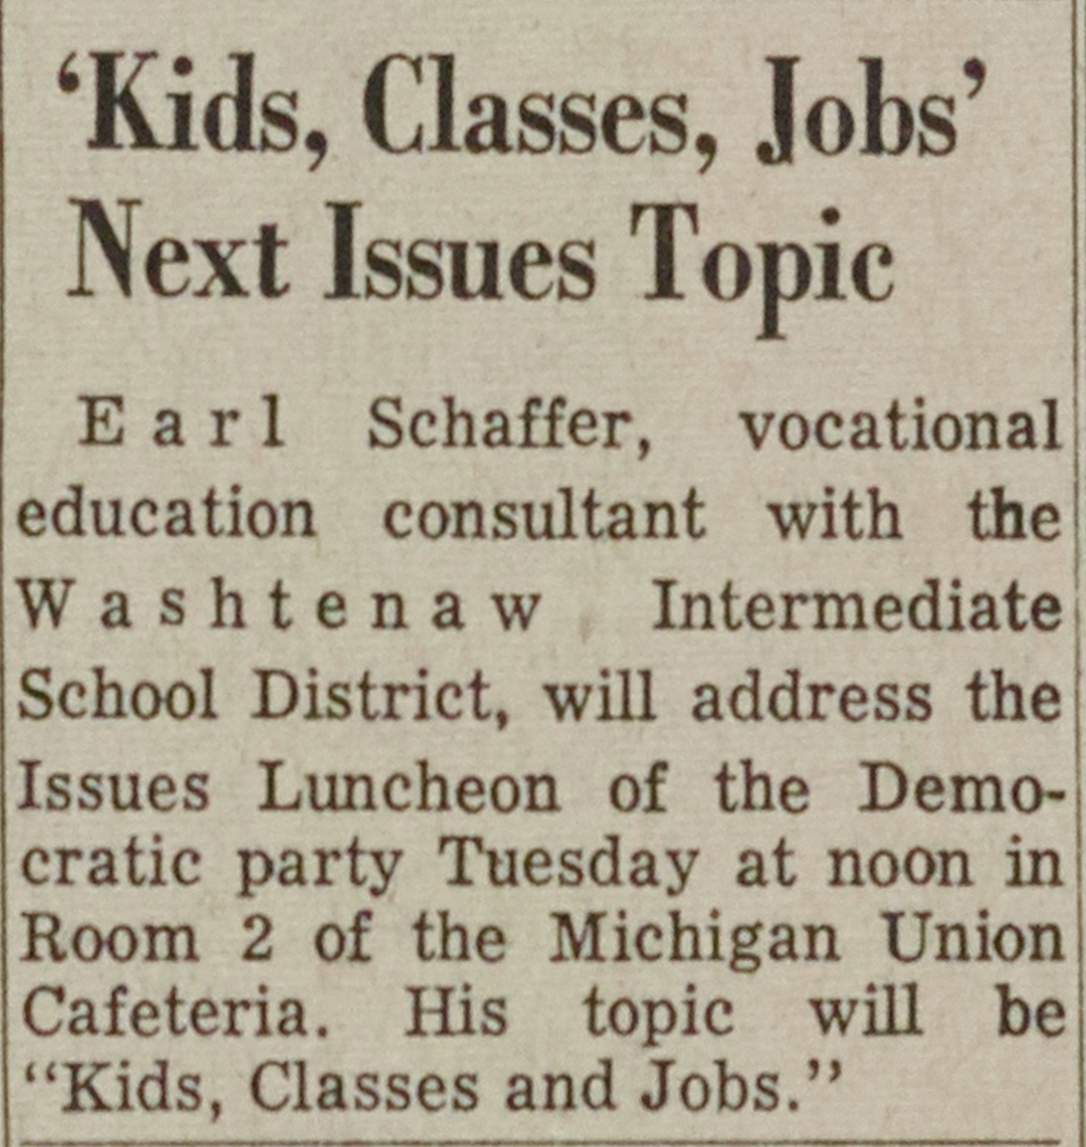 'Kids, Classes, Jobs' Next Issues Topic image